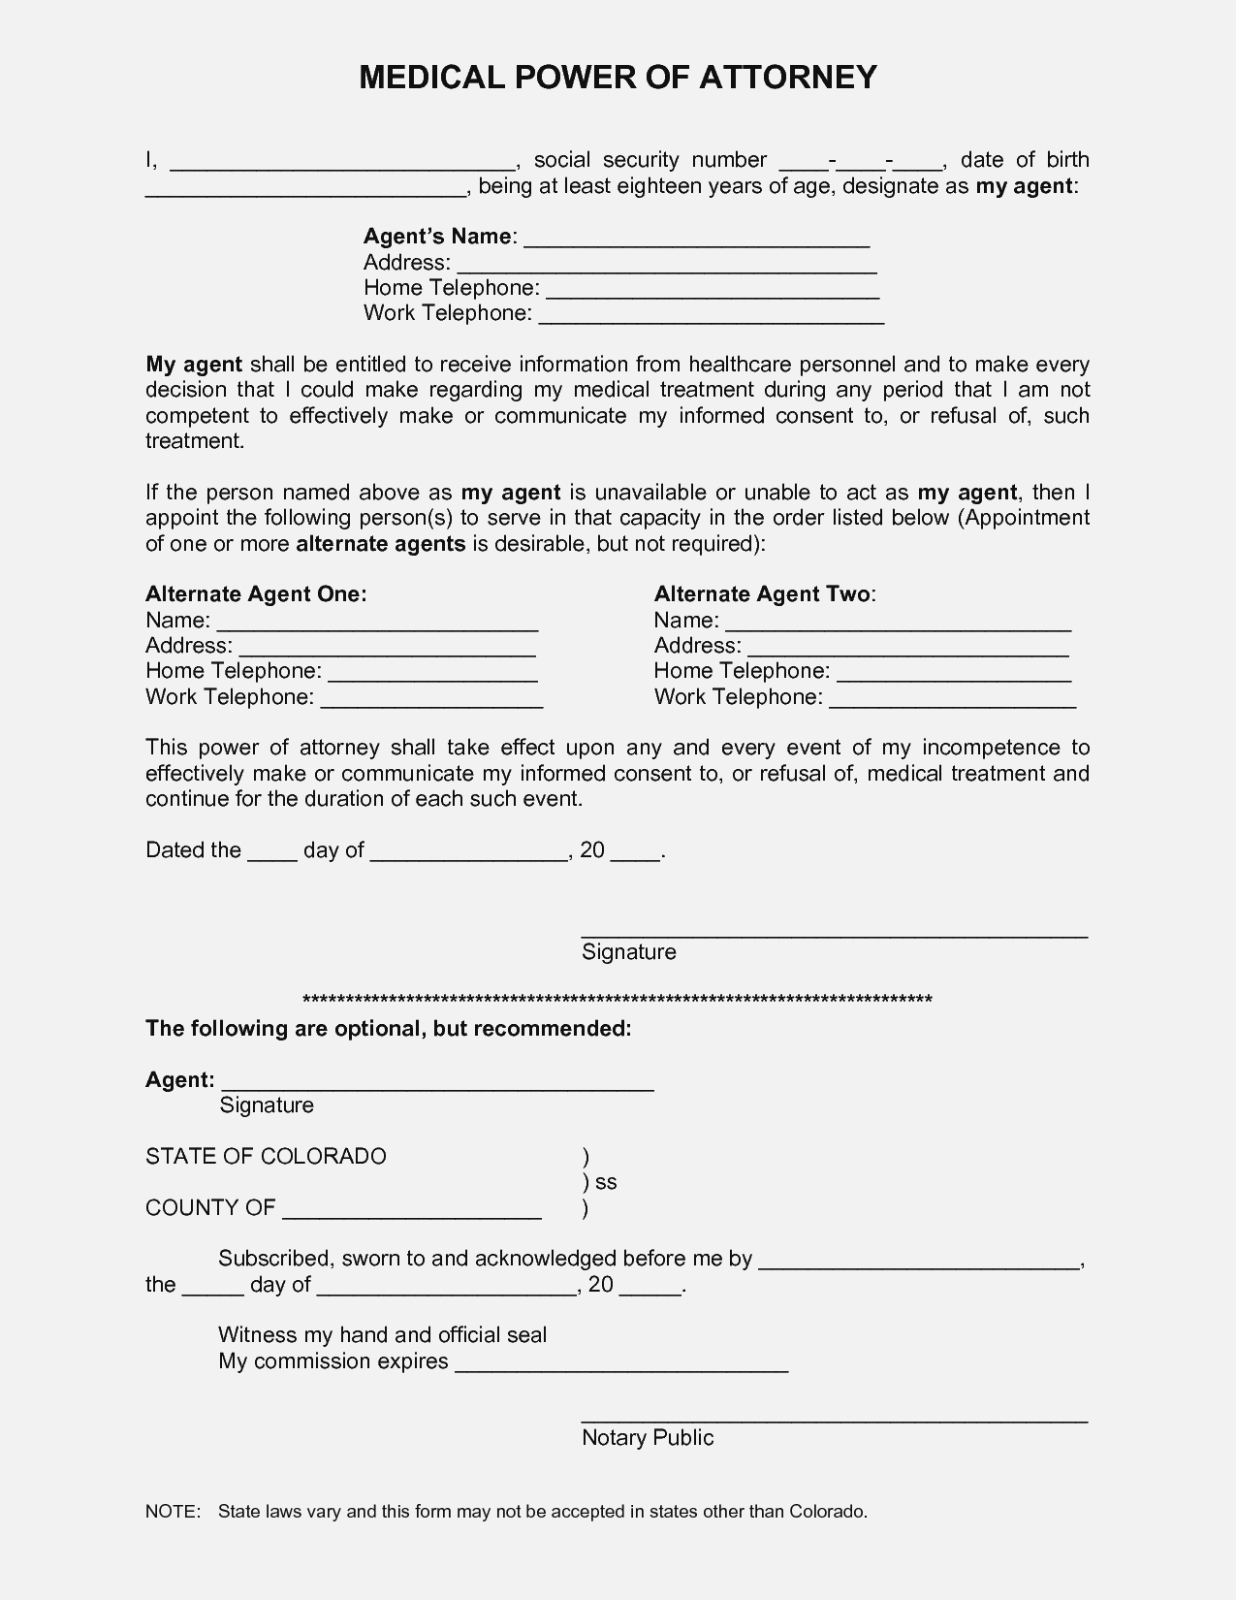 The Latest Trend In Online   The Invoice And Form Template - Free Printable Power Of Attorney Forms Online